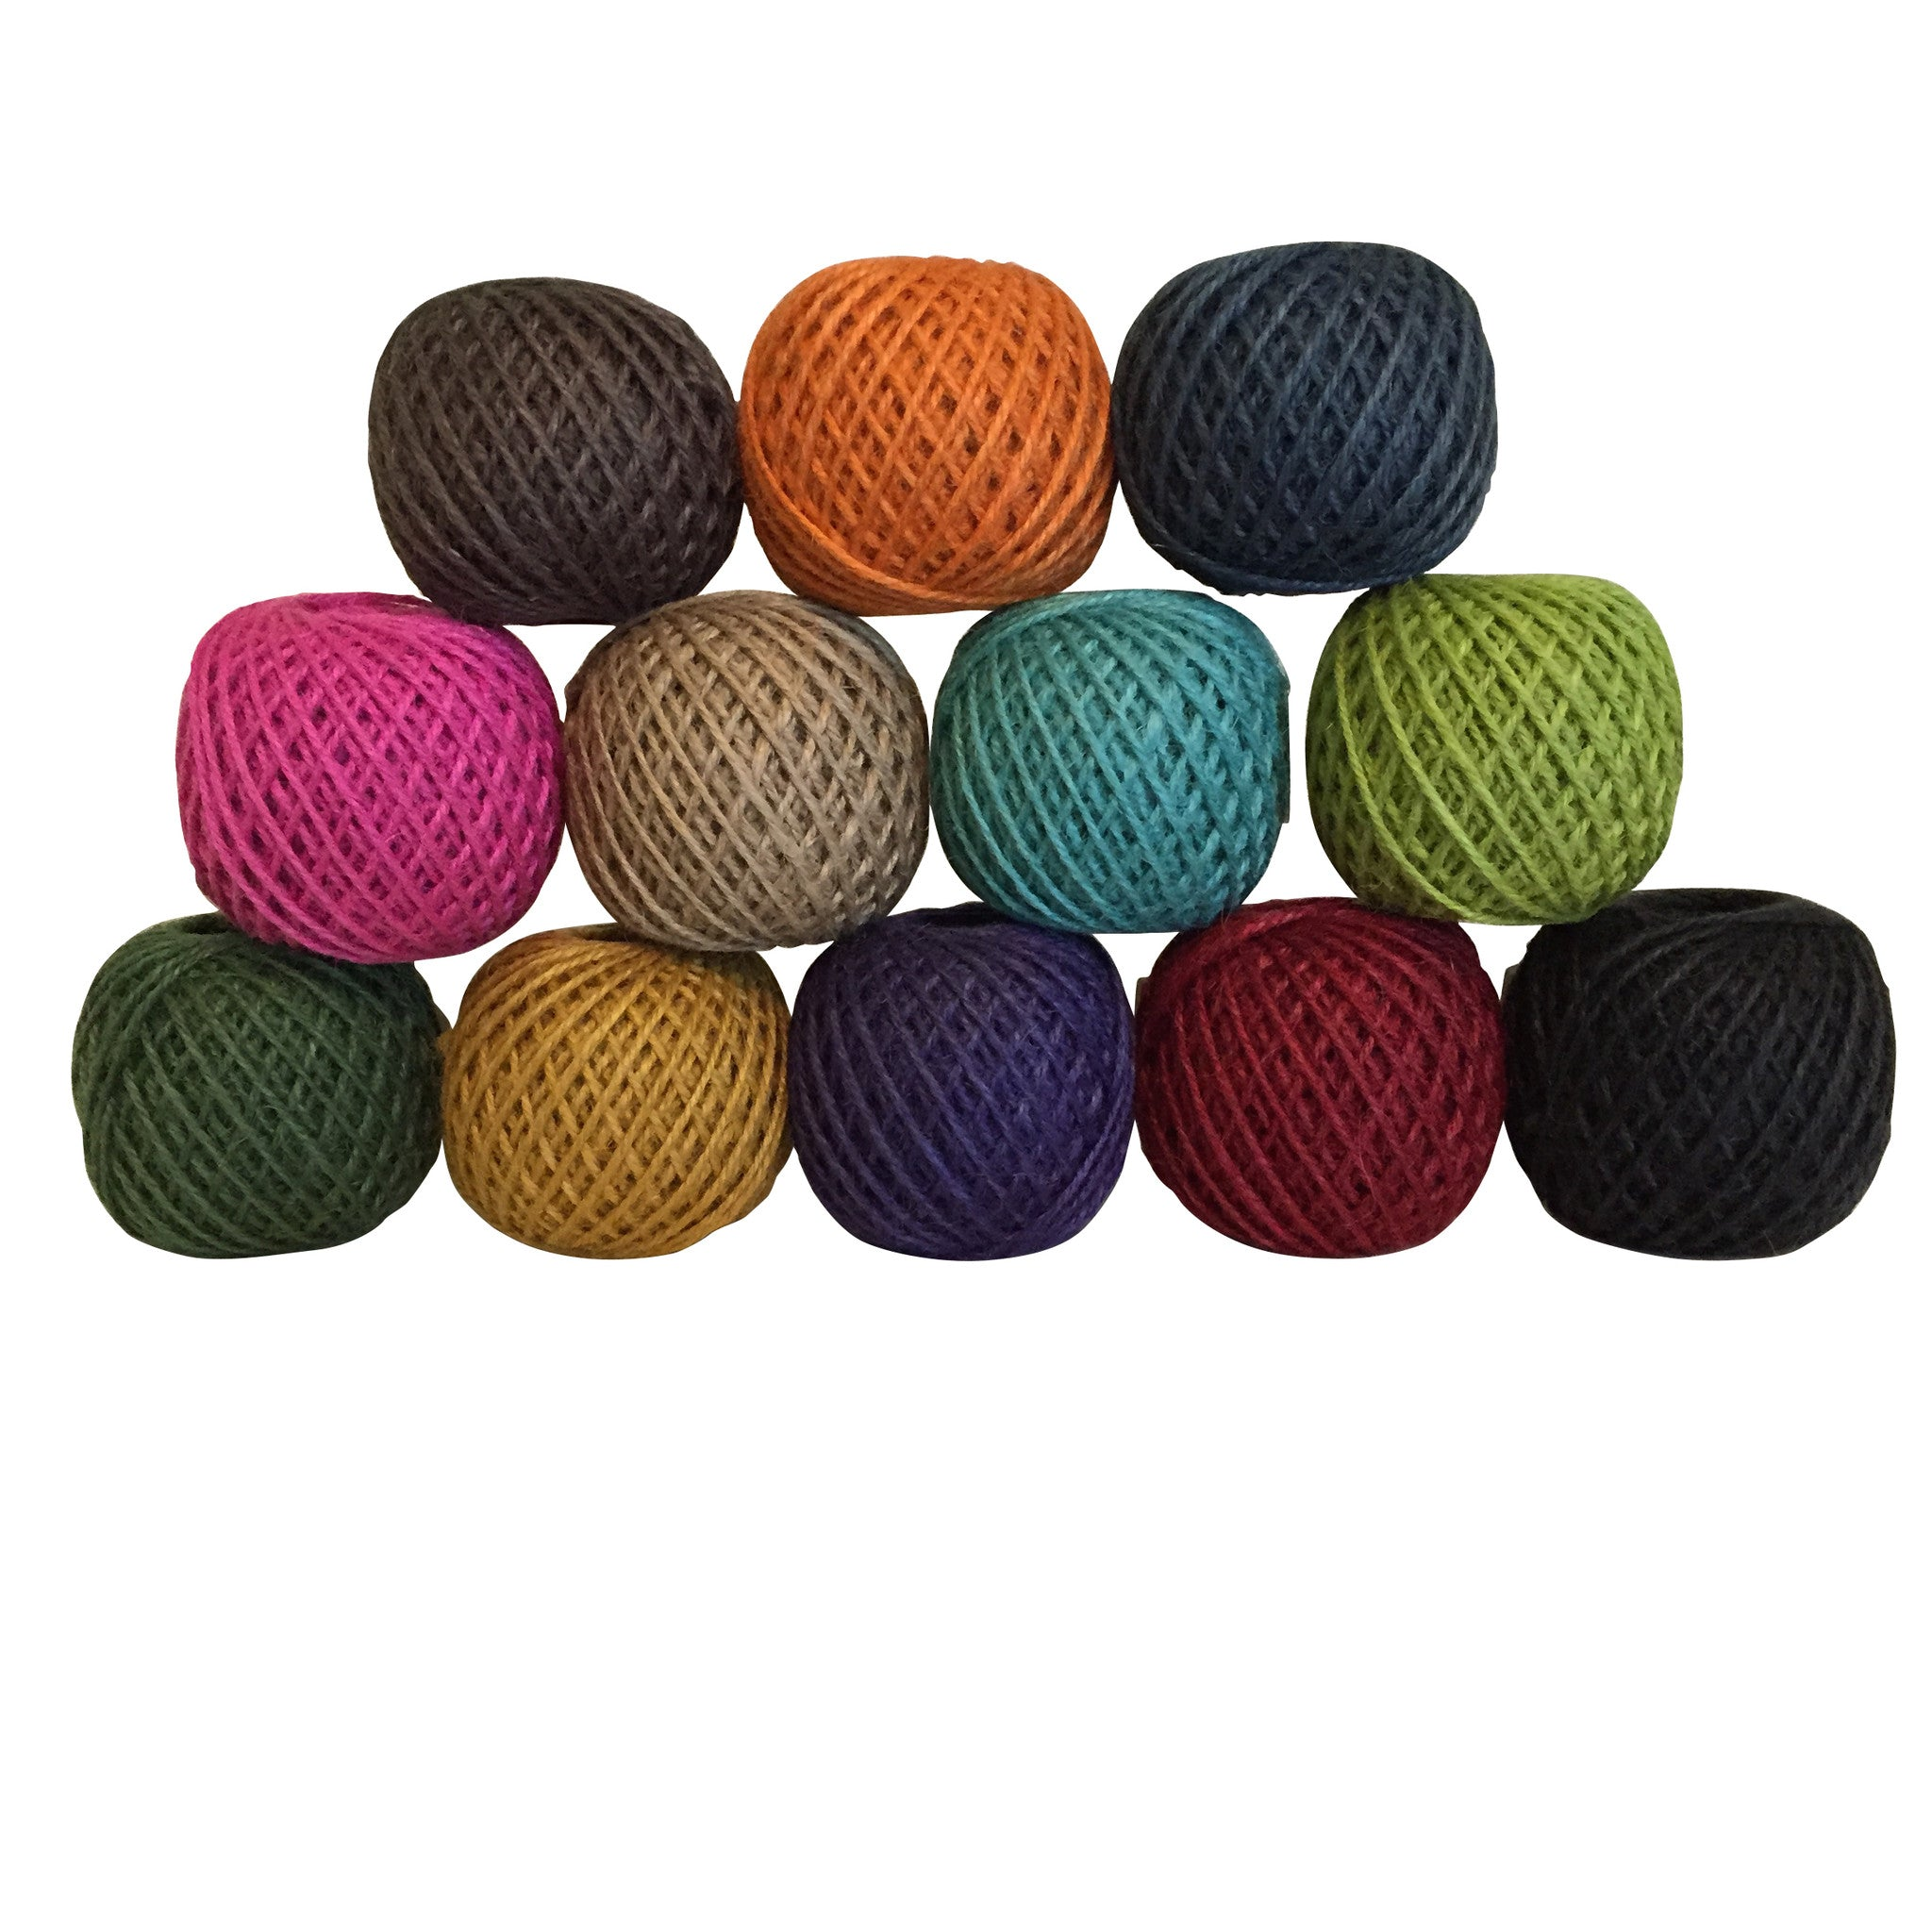 Twine Balls 100g - The Potting Shed Garden Tools